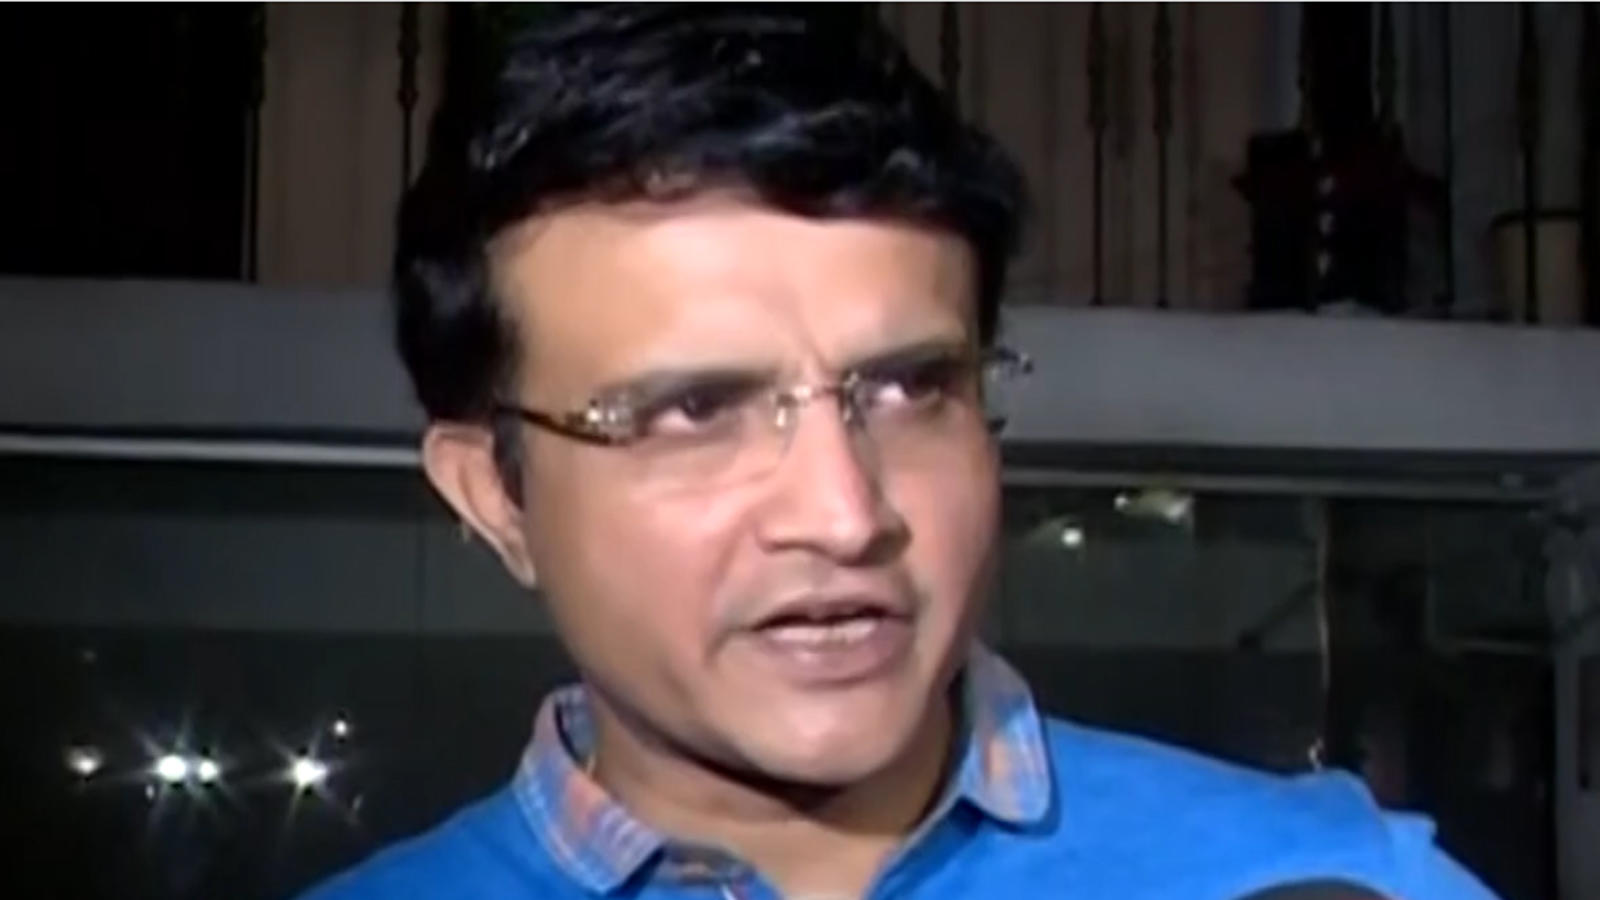 india-vs-bangladesh-1st-t20i-match-to-go-ahead-in-delhi-as-planned-says-sourav-ganguly